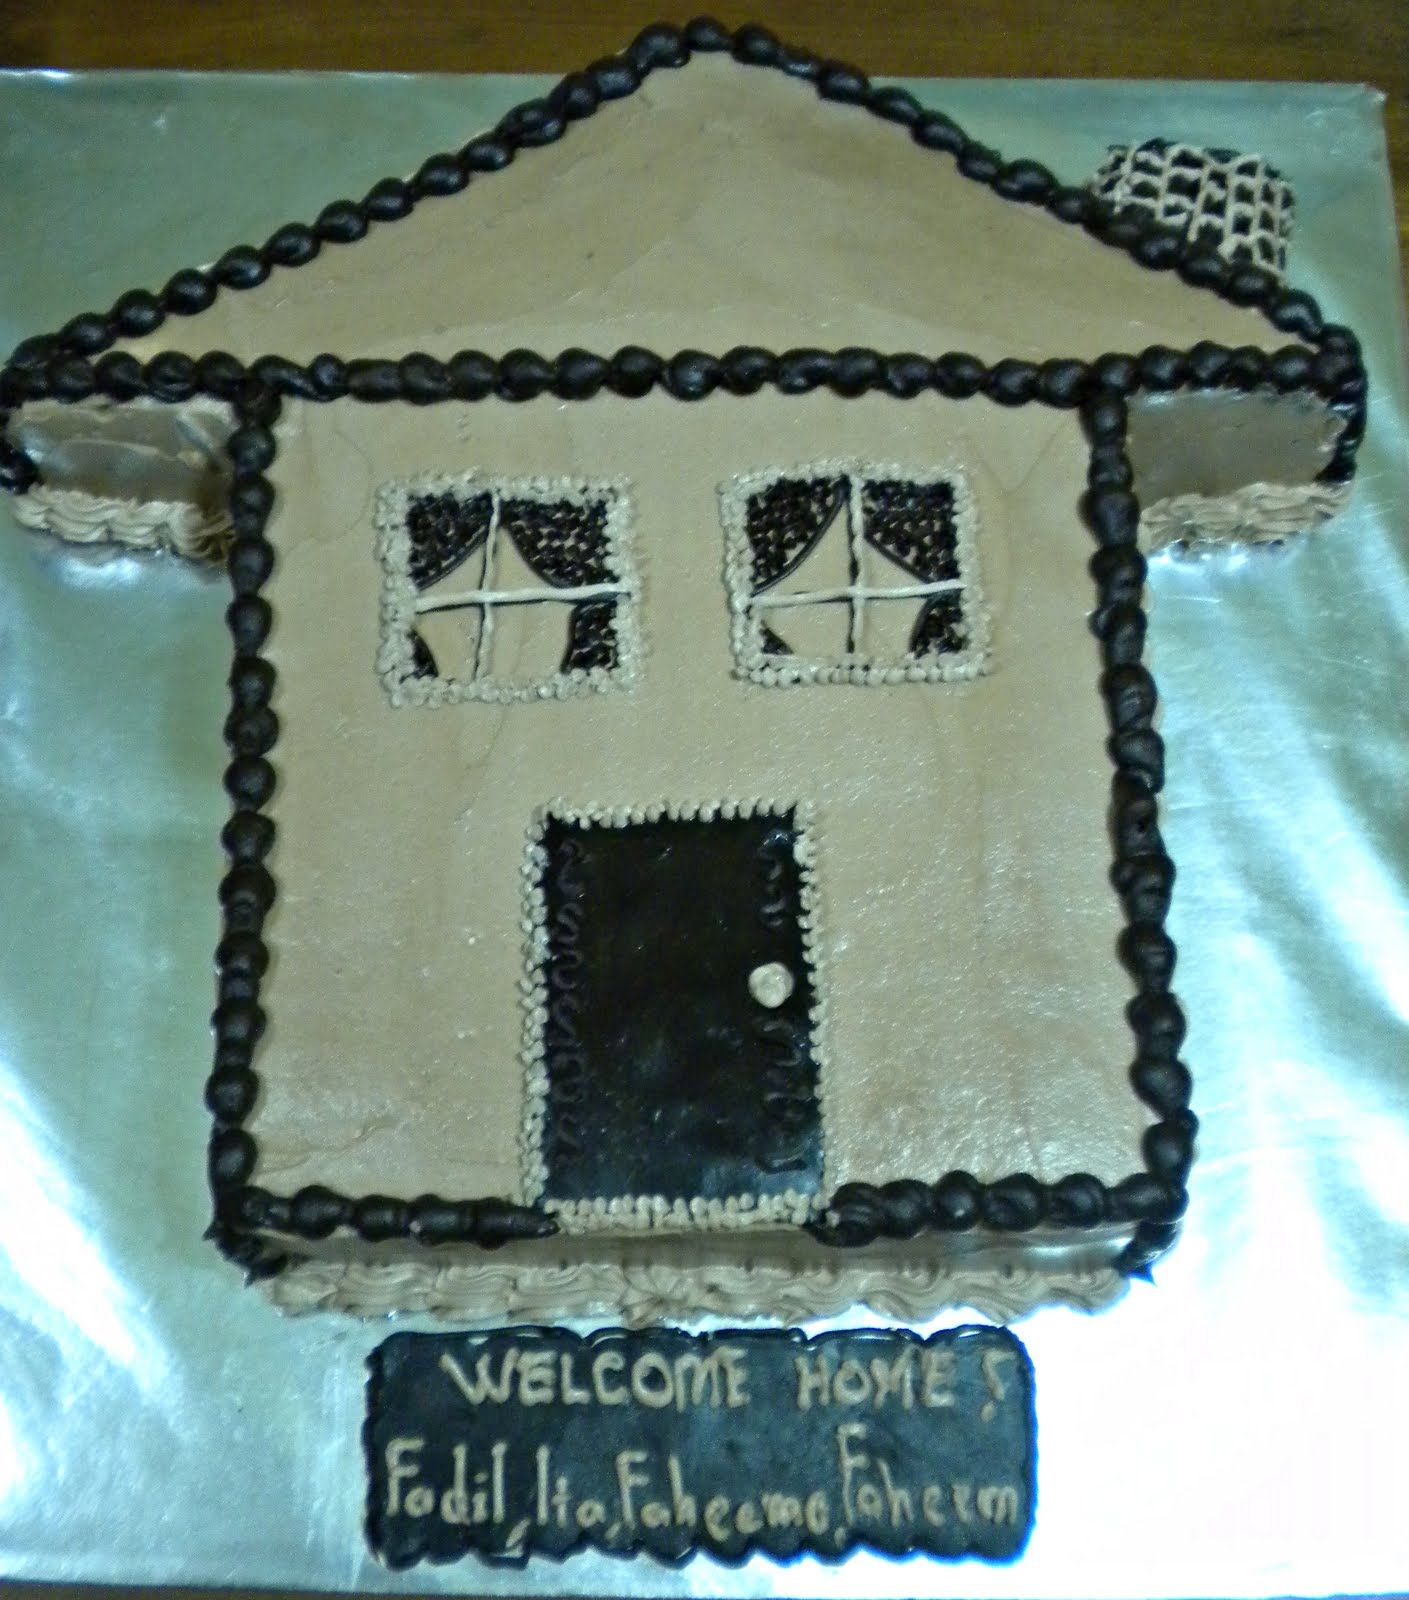 House shaped cake recipes